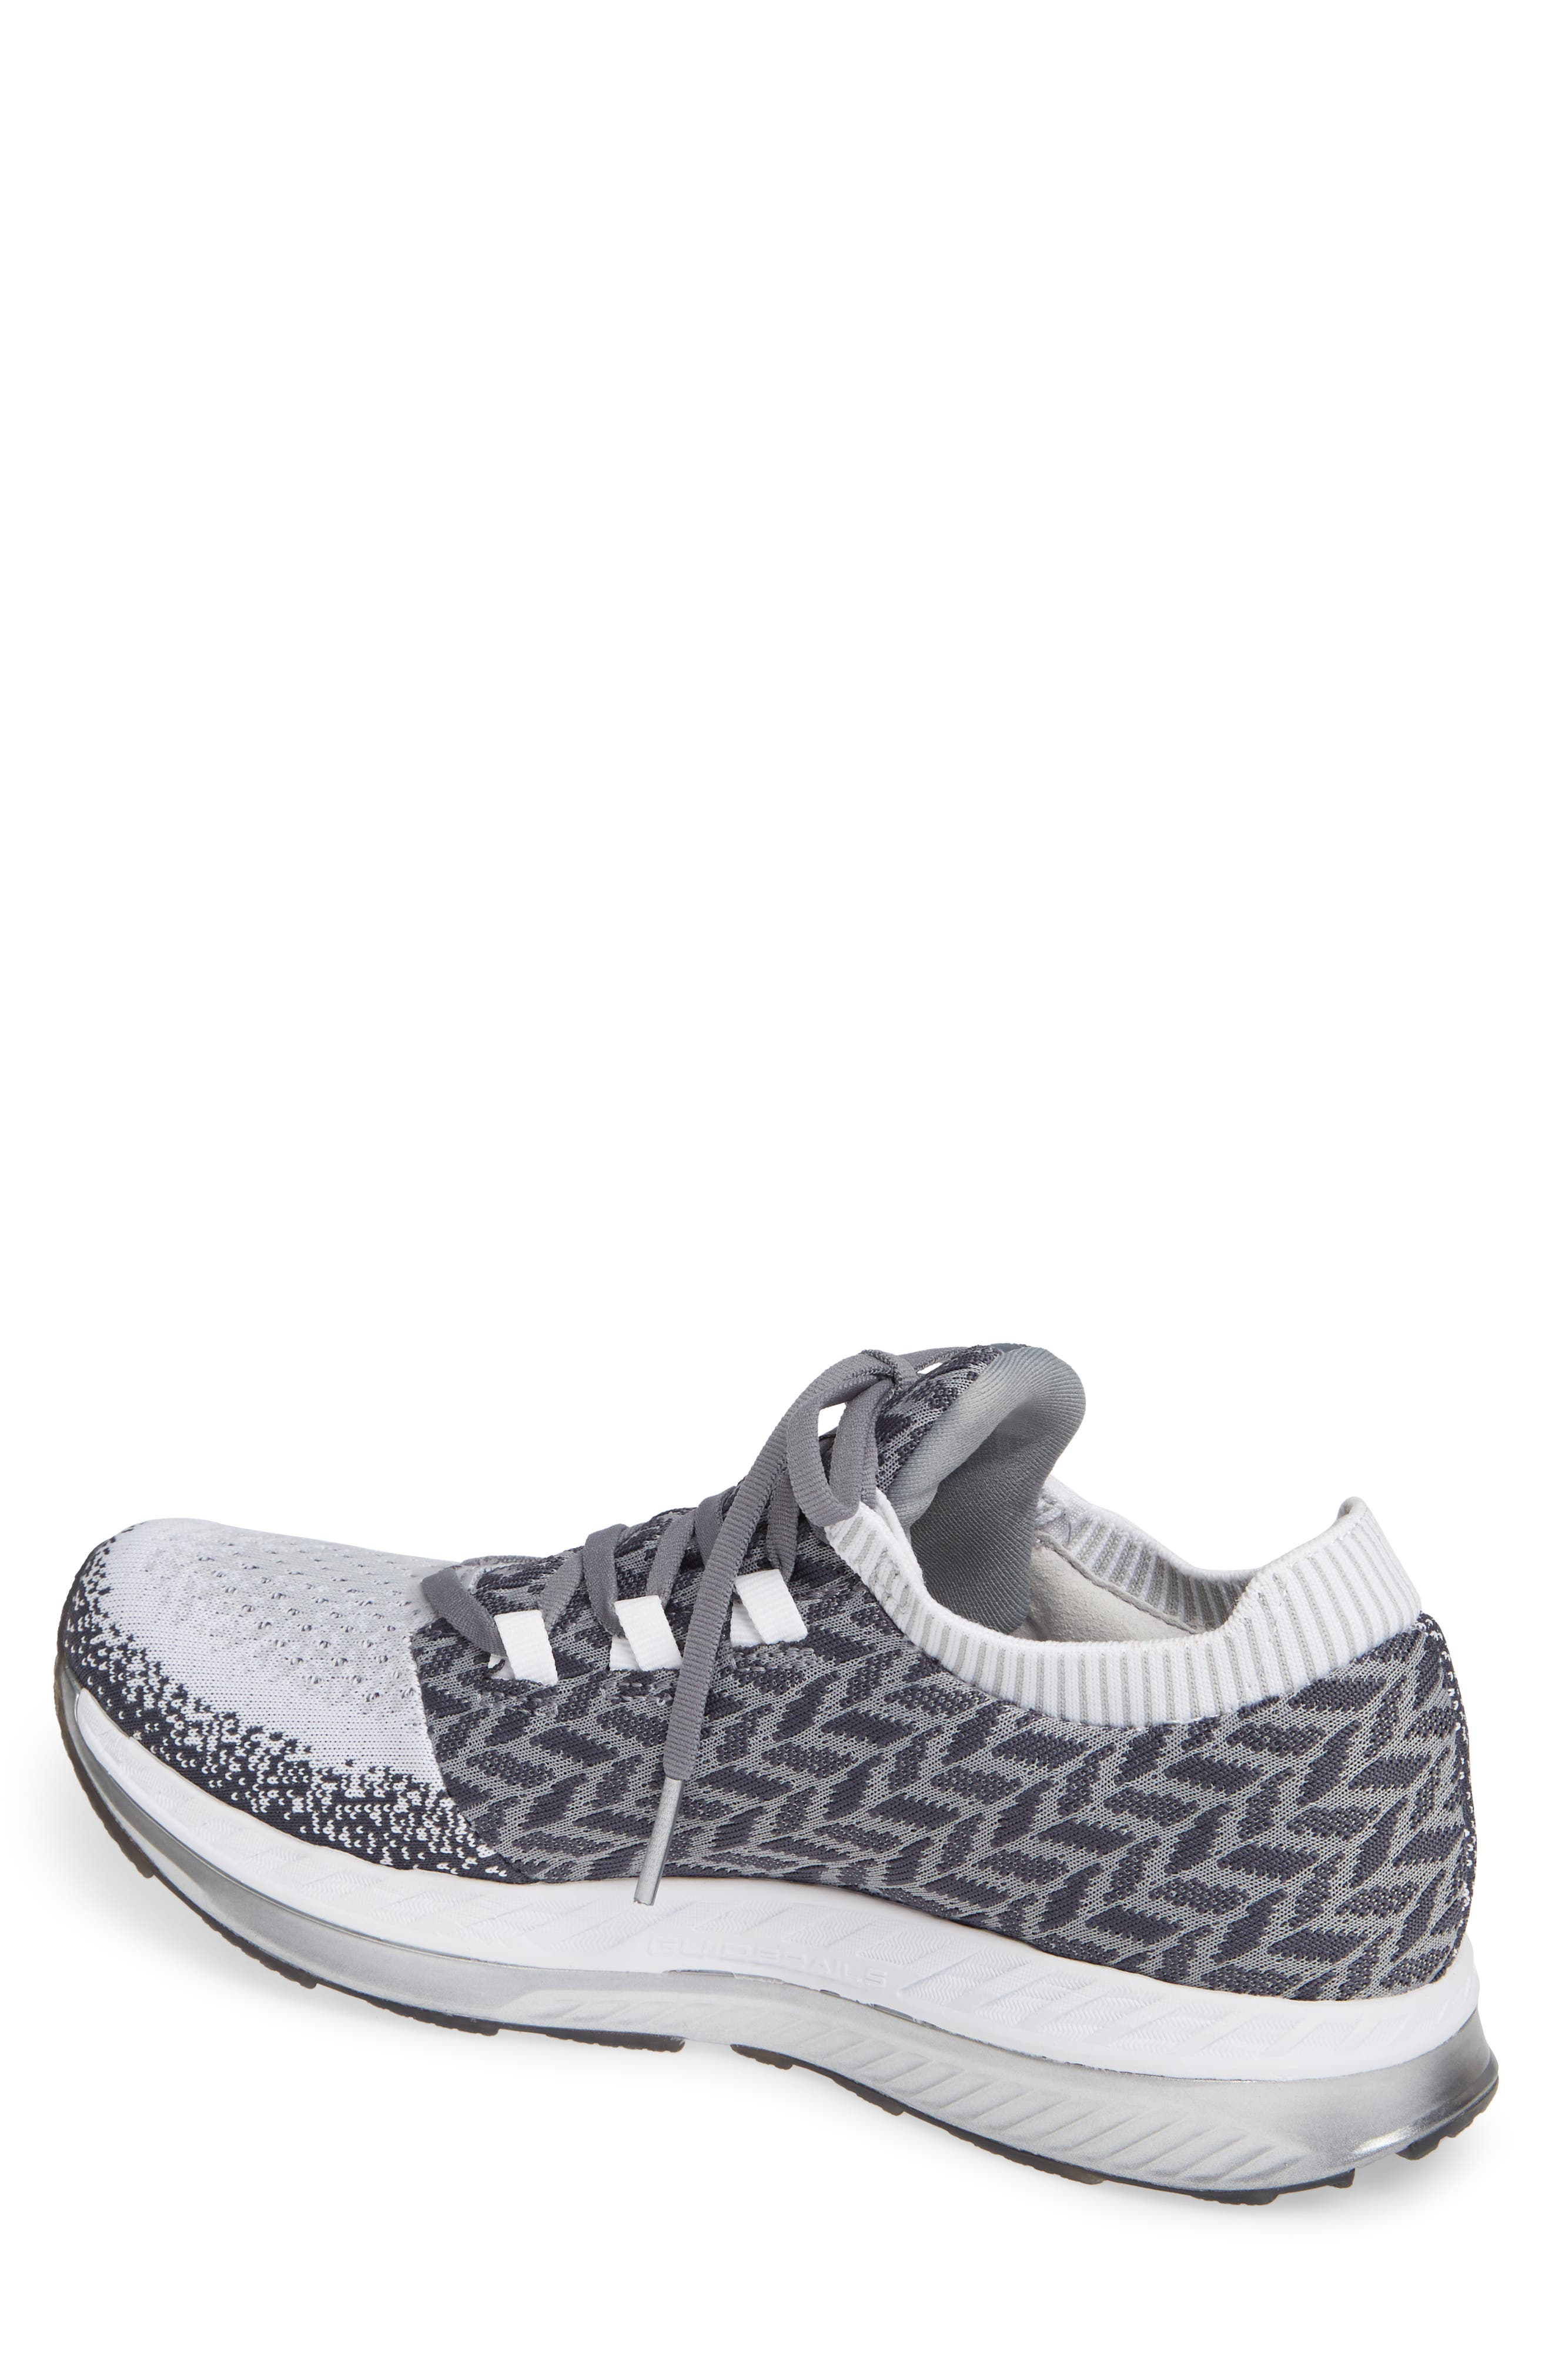 Bedlam Running Shoe,                             Alternate thumbnail 2, color,                             GREY/ WHITE/ EBONY